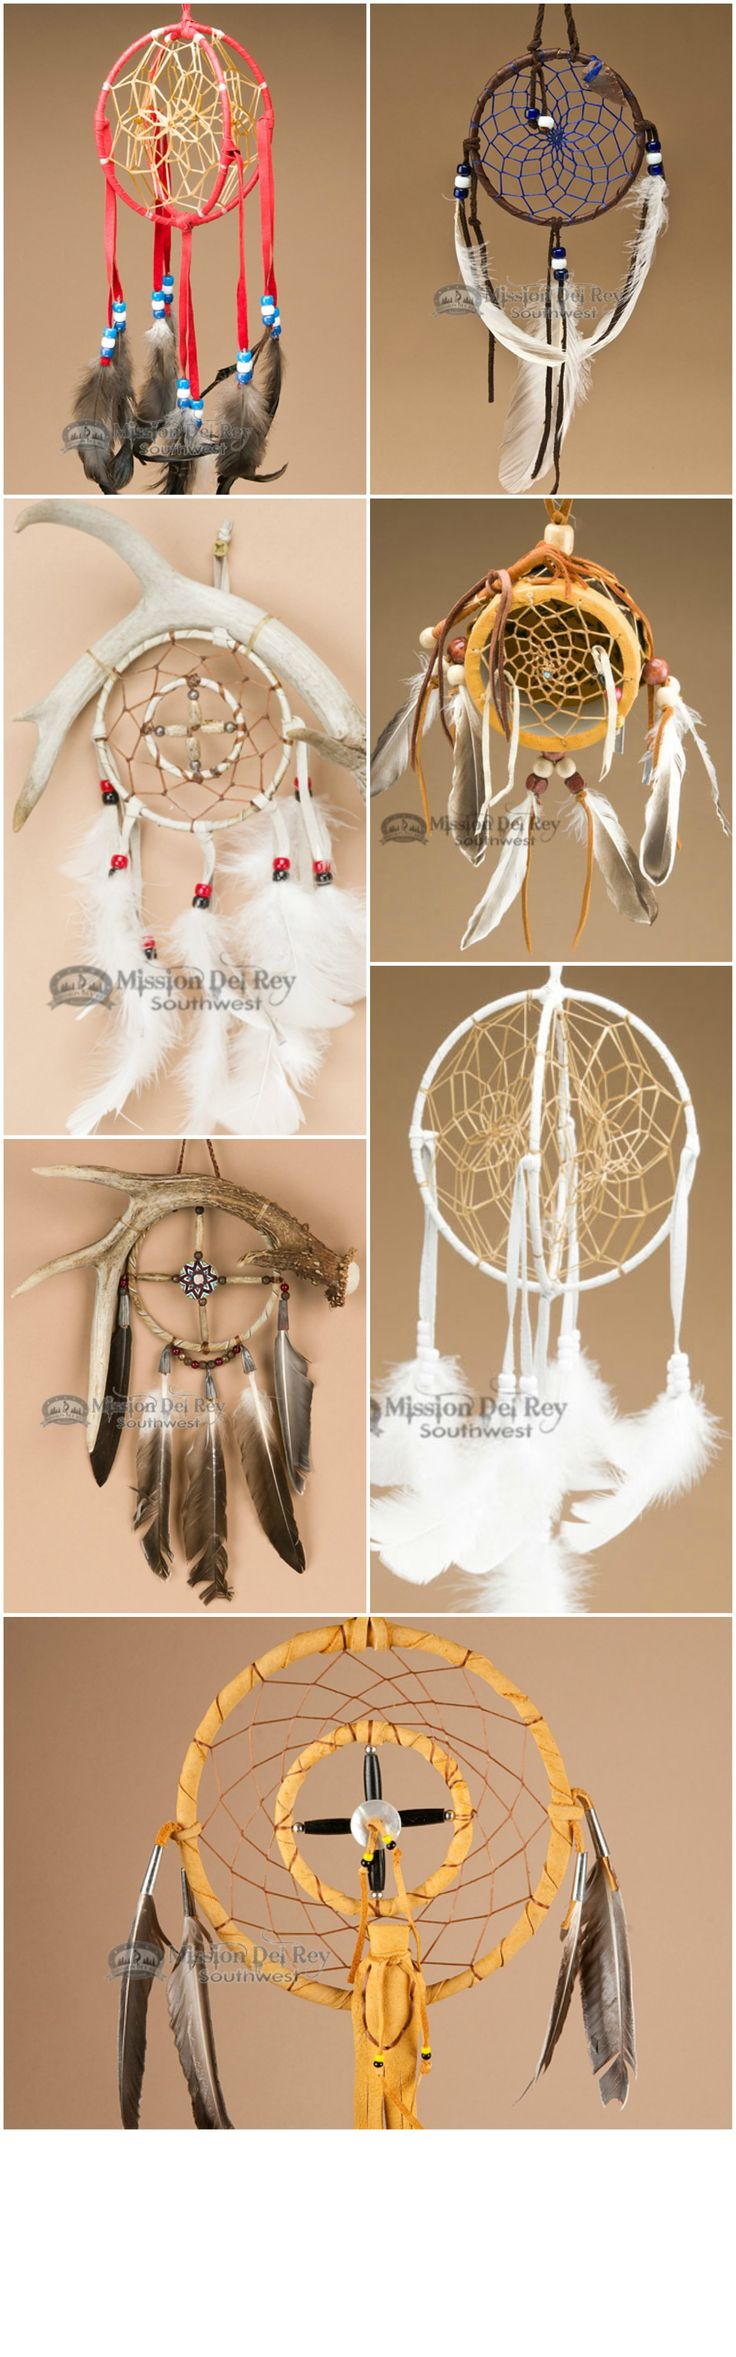 best ideas about american dreams native american see our quality hand crafted native american dream catchers and wall art choose from a wide variety of styles and colors and sign up for our newsletter